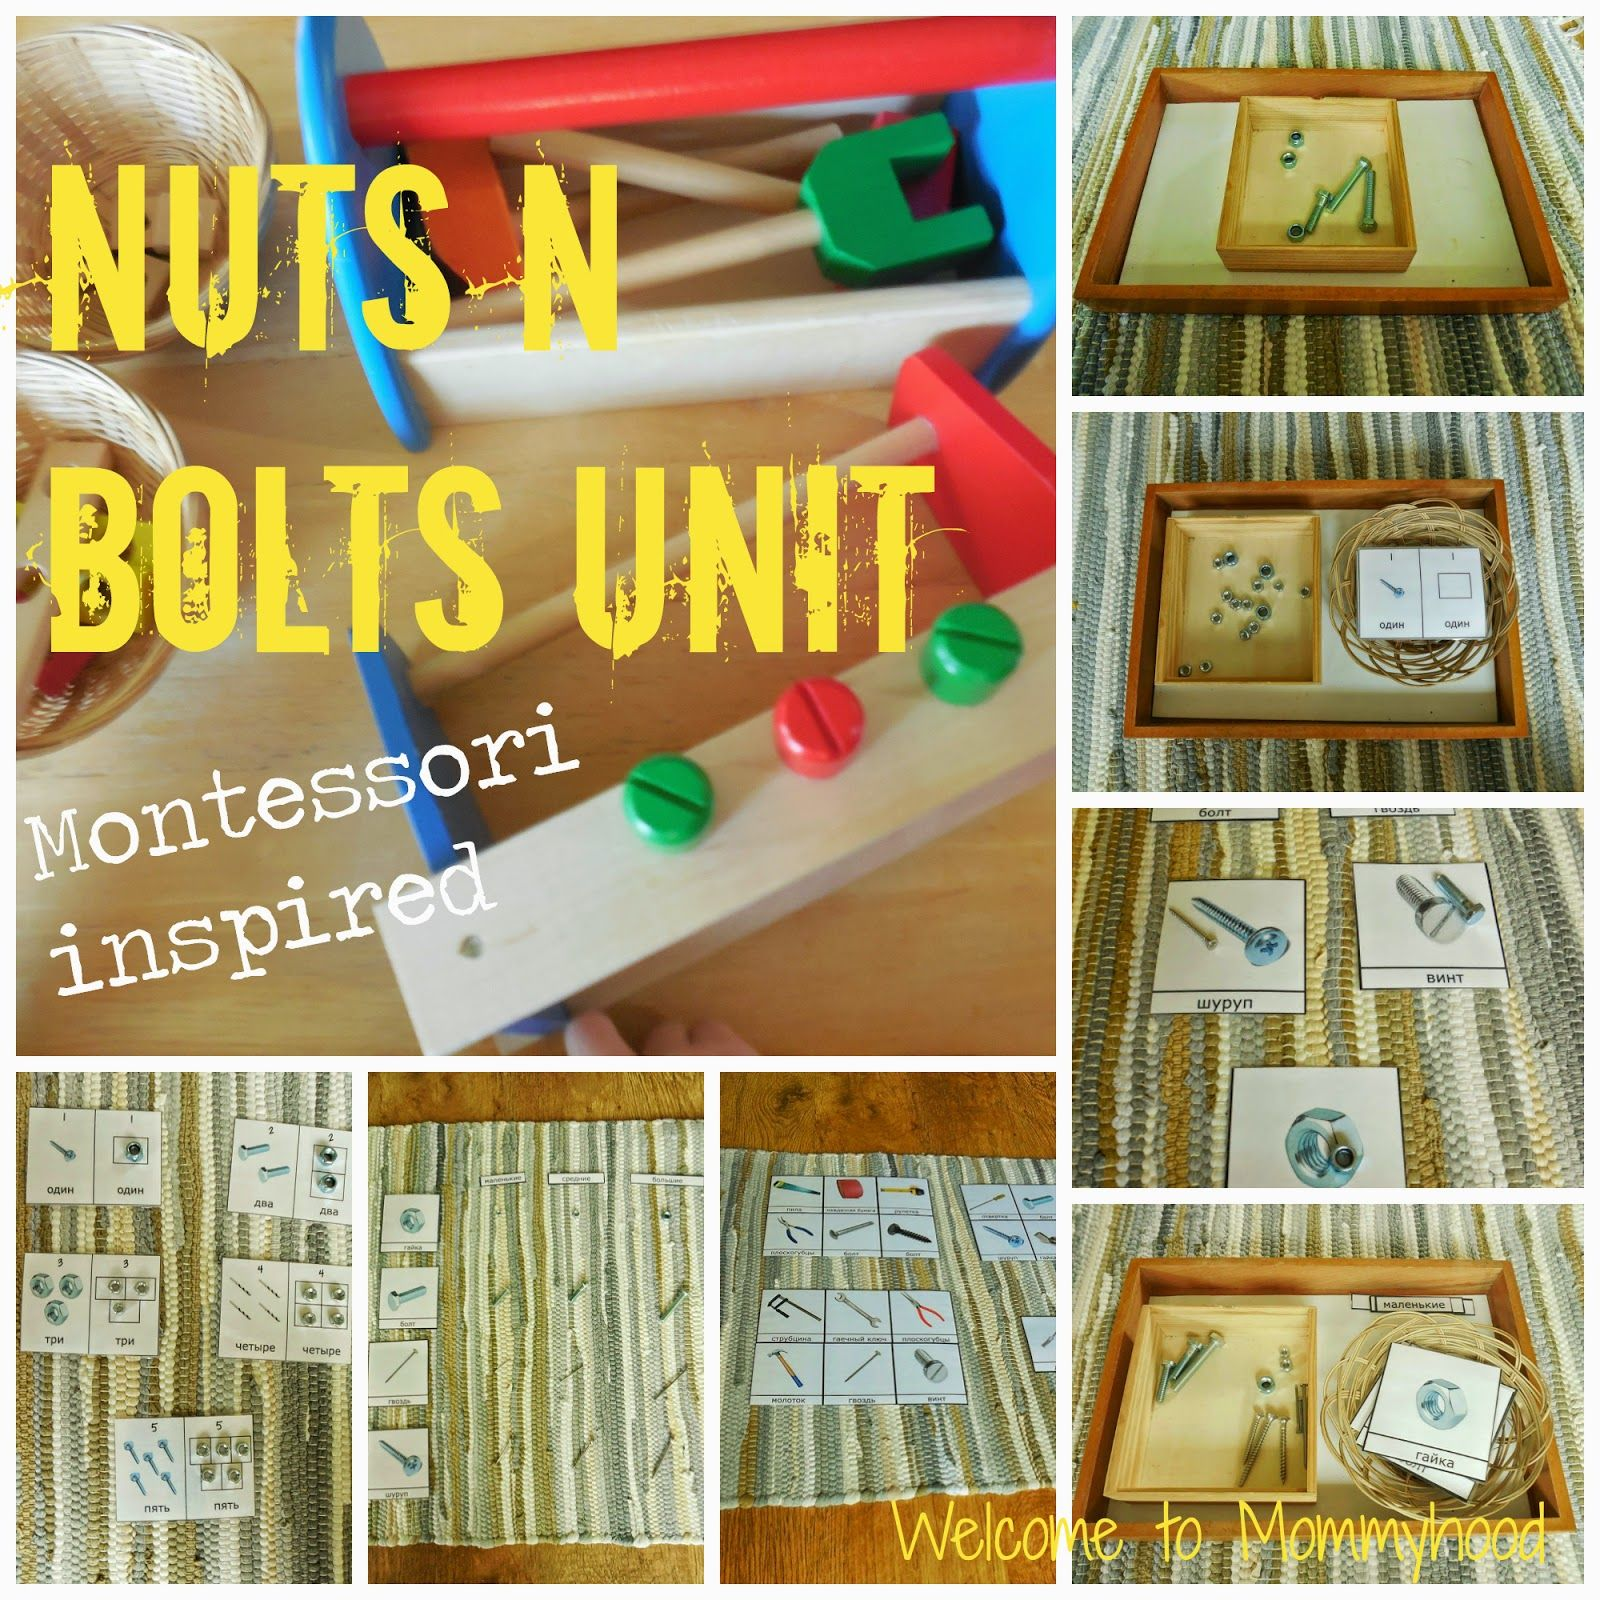 Nuts And Bolts Unit With Free Printables From Welcome To Mommyhood